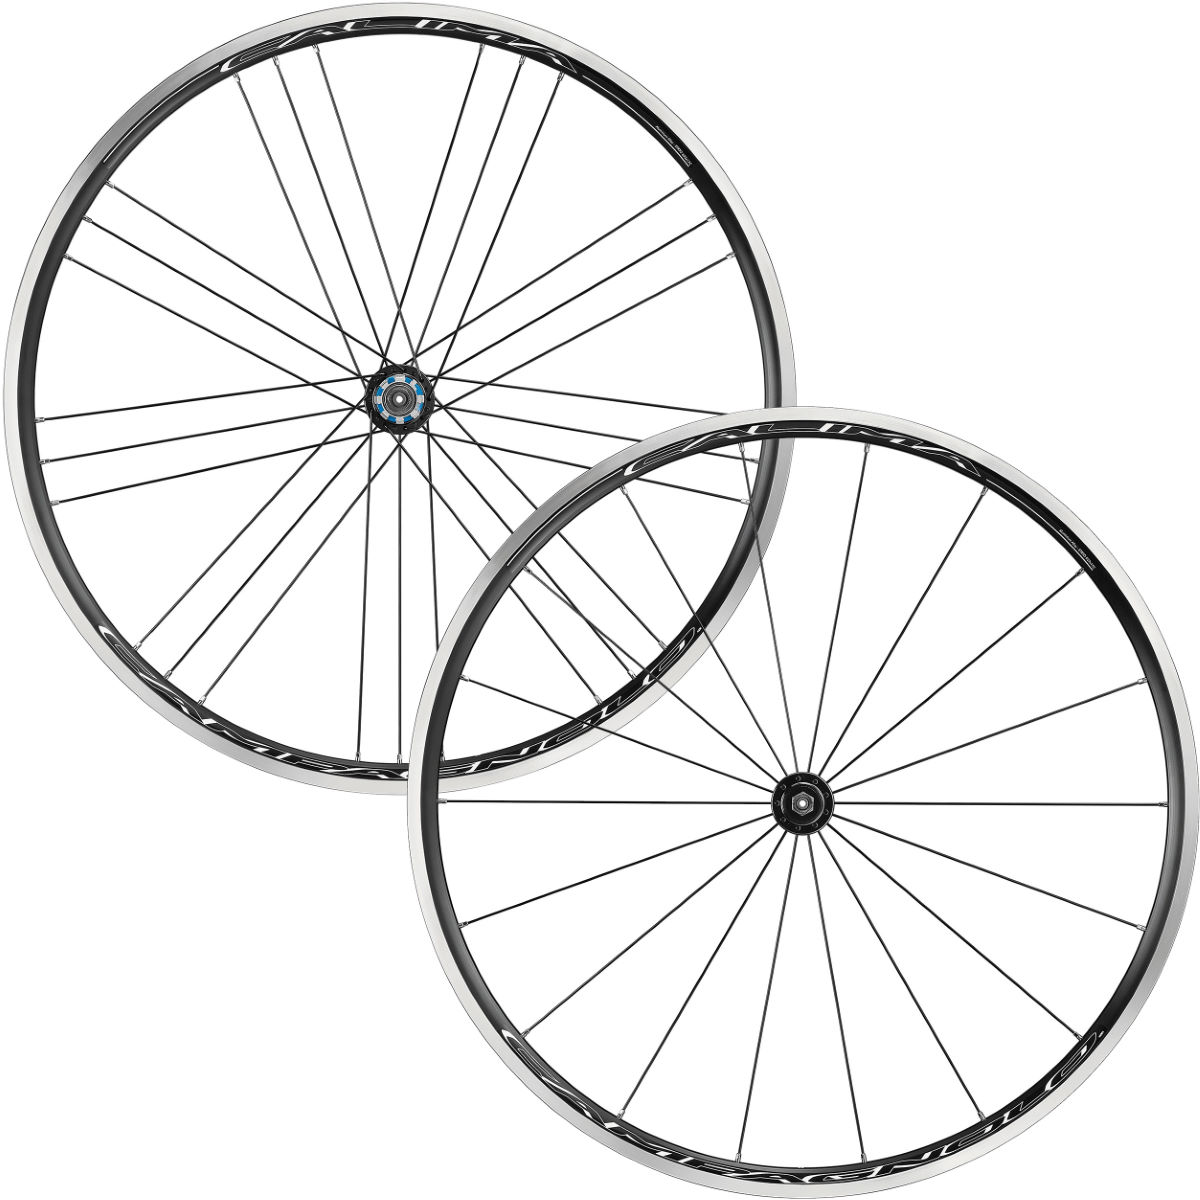 Campagnolo Calima C17 Freehub Road Wheelset   Performance Wheels